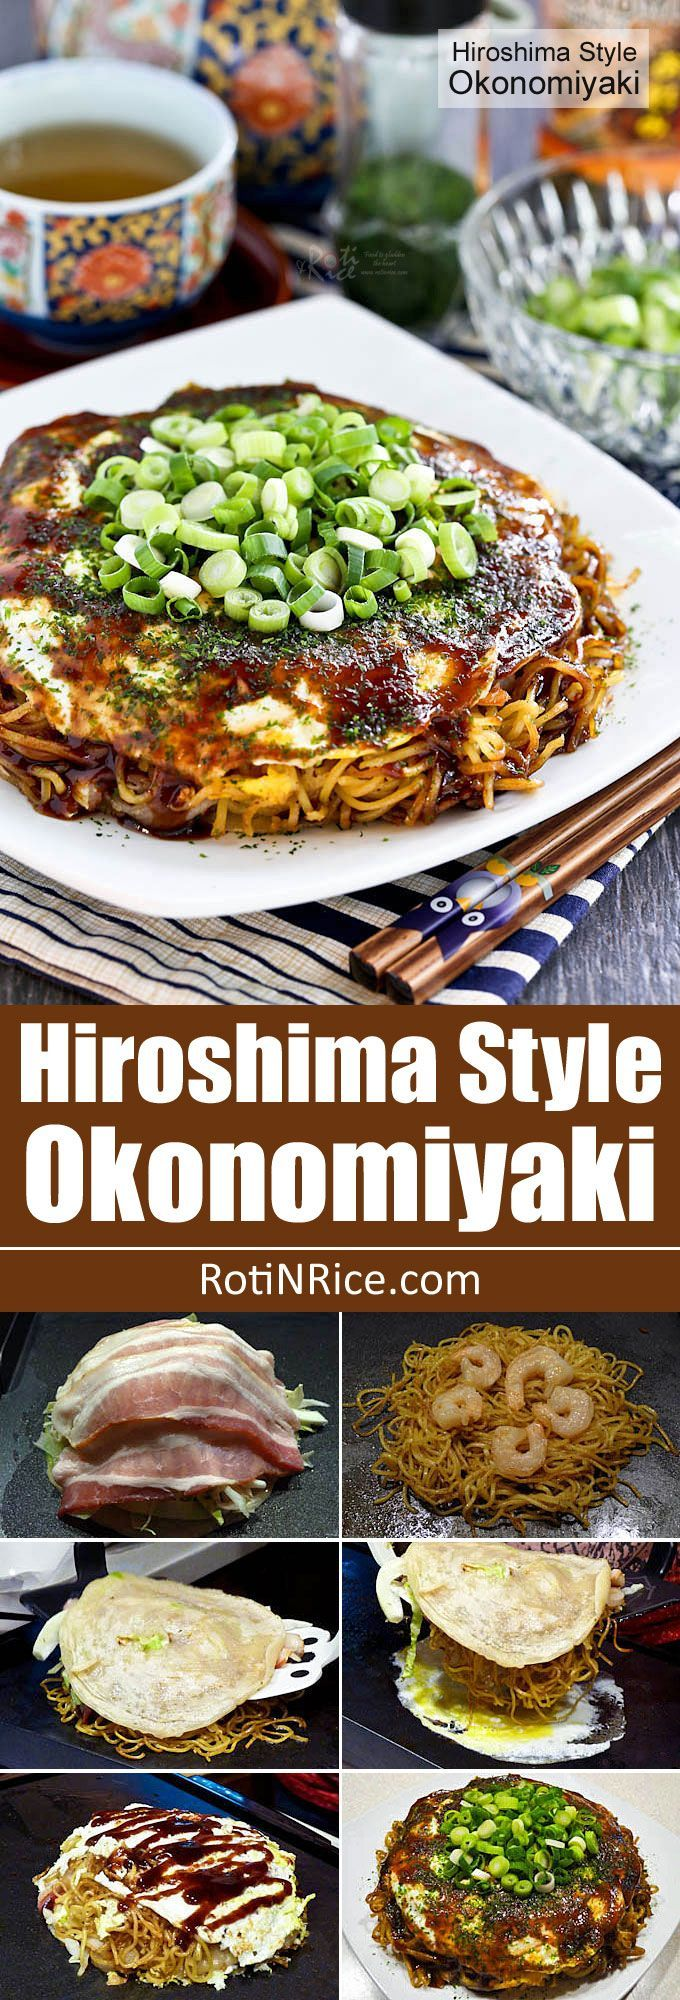 Hiroshima Style Okonomiyaki (Japanese Layered Pancakes) - the ultimate savory pancake complete with cabbage, bacon, noodles, shrimp, and egg. So yummy! | RotiNRice.com http://amzn.to/2pWJhBV